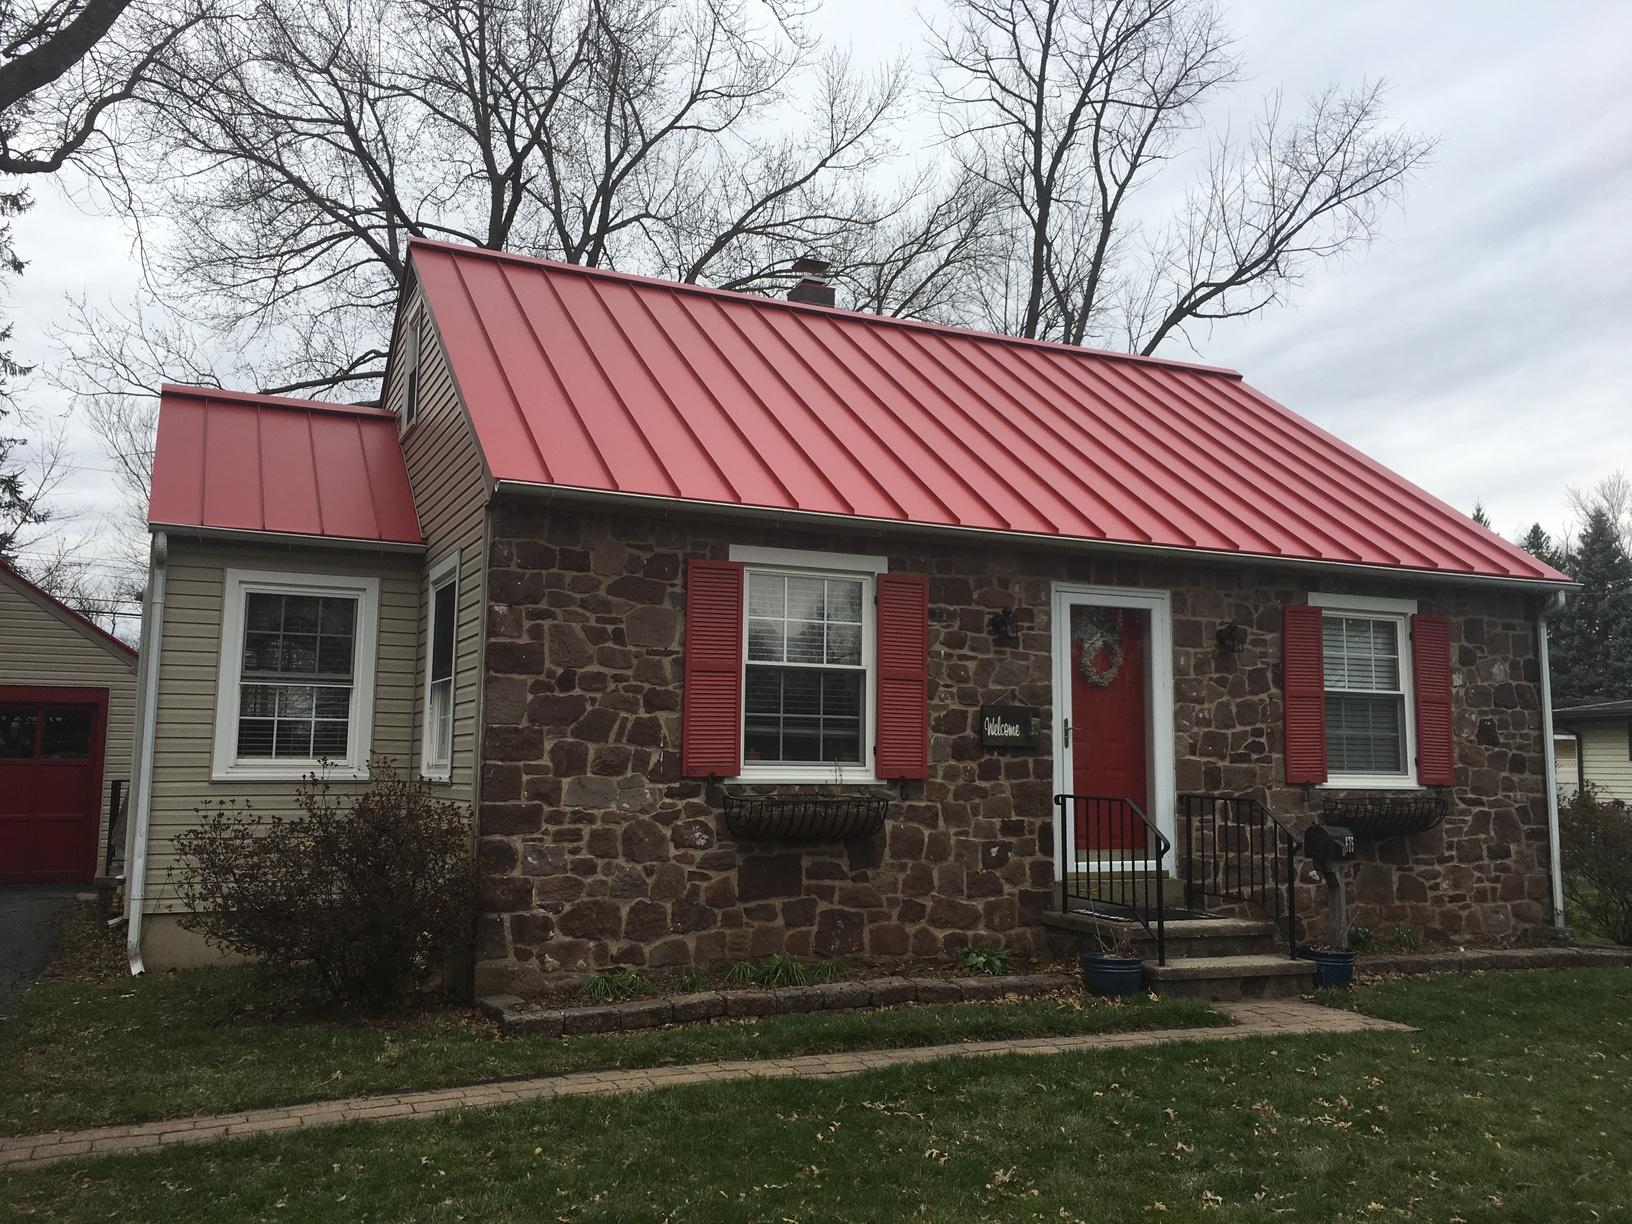 Replacing 15-Year-Old Two-Layer Asphalt Shingle Roof with Standing Seam Metal in Doylestown, PA - After Photo